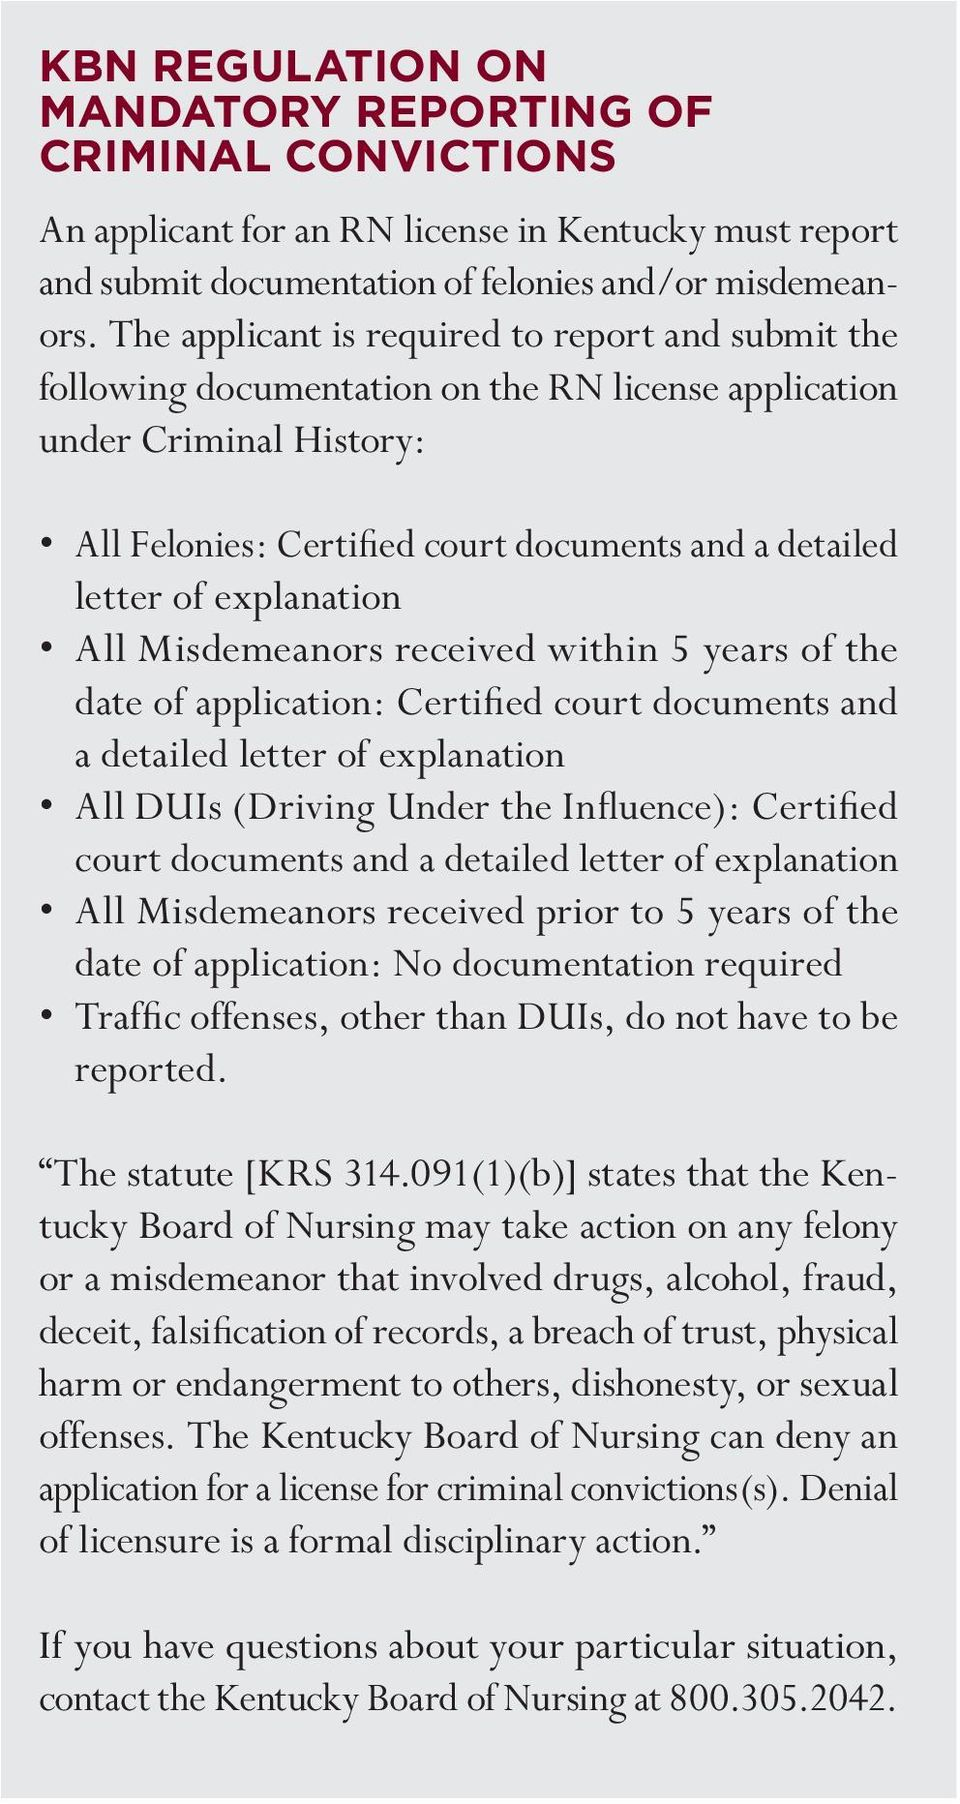 explanation All Misdemeanors received within 5 years of the date of application: Certified court documents and a detailed letter of explanation All DUIs (Driving Under the Influence): Certified court